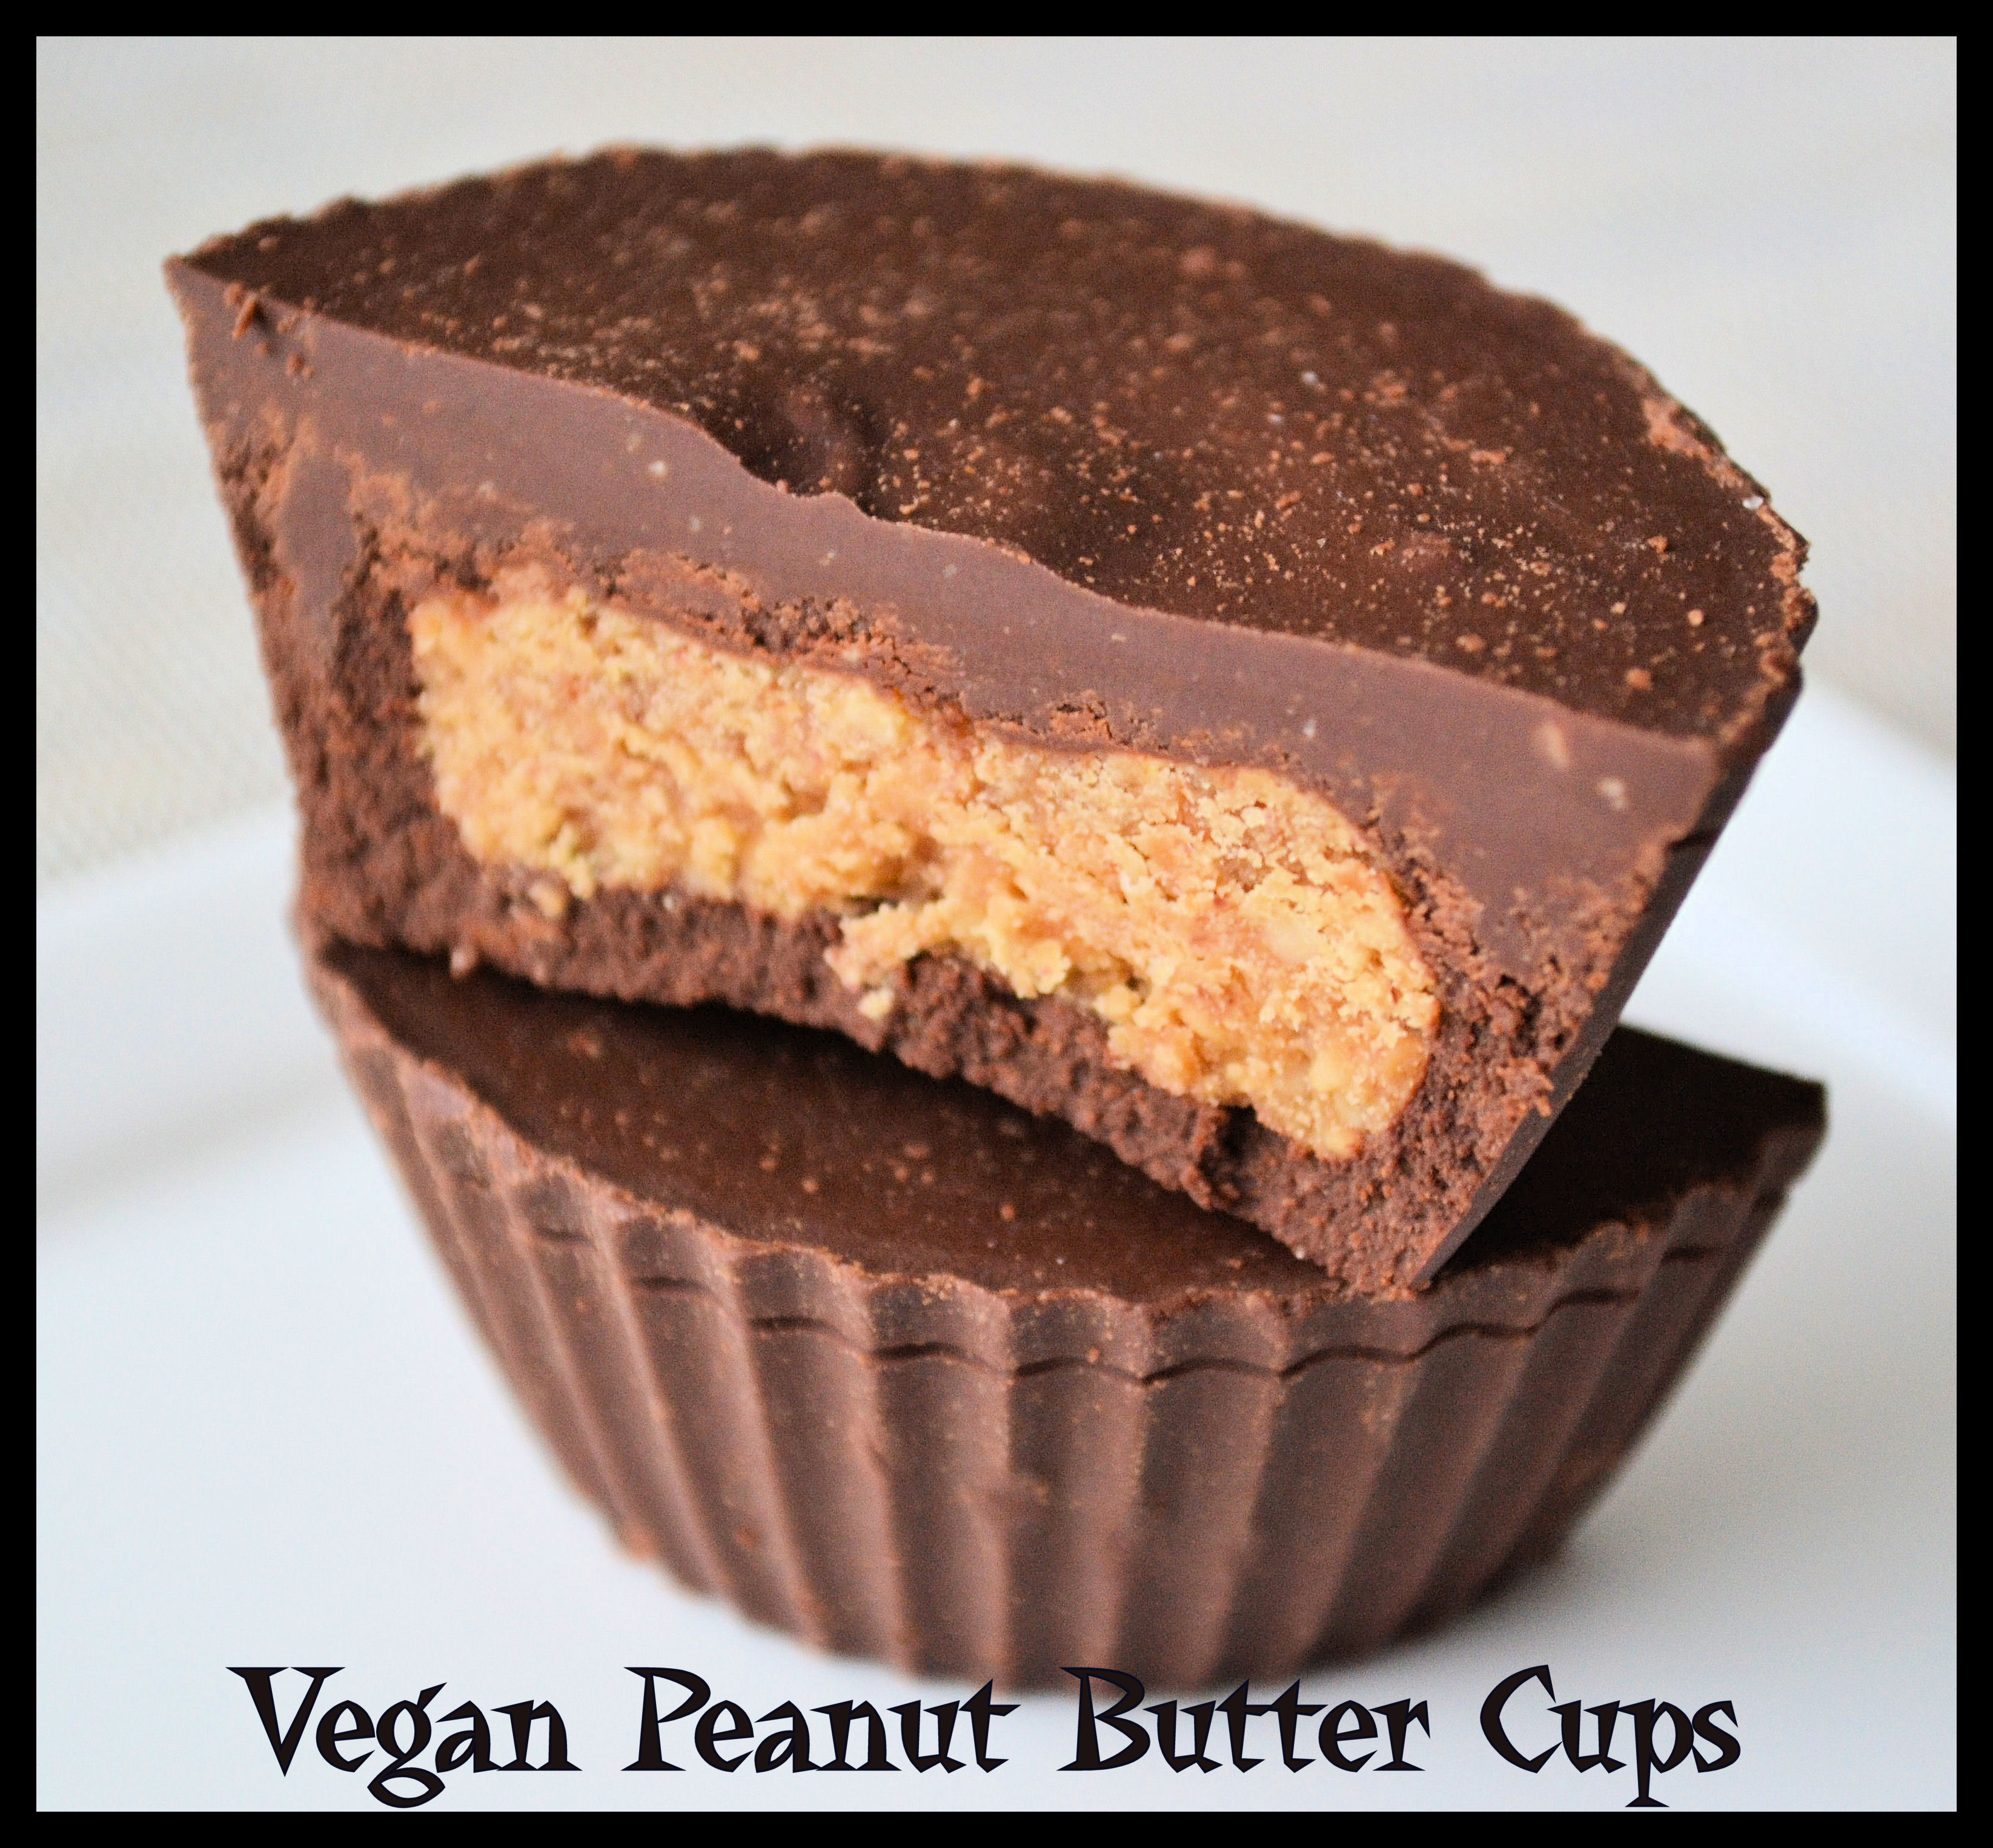 Vegan Peanut Butter Cups 1